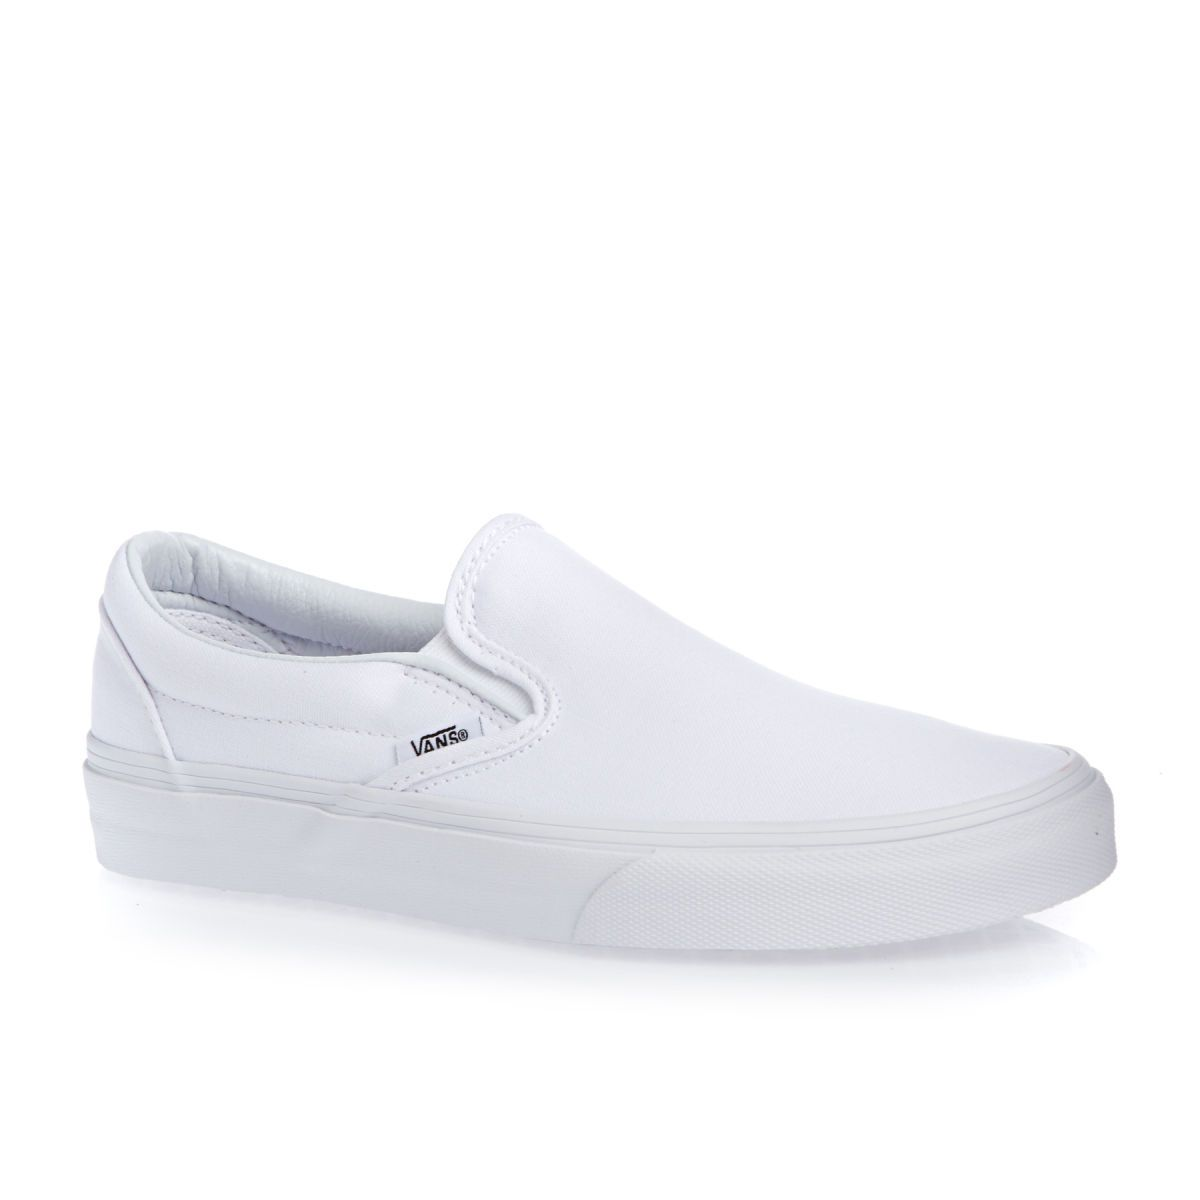 59e4b4ec2691 Vans Classic Slip-on Shoes True White